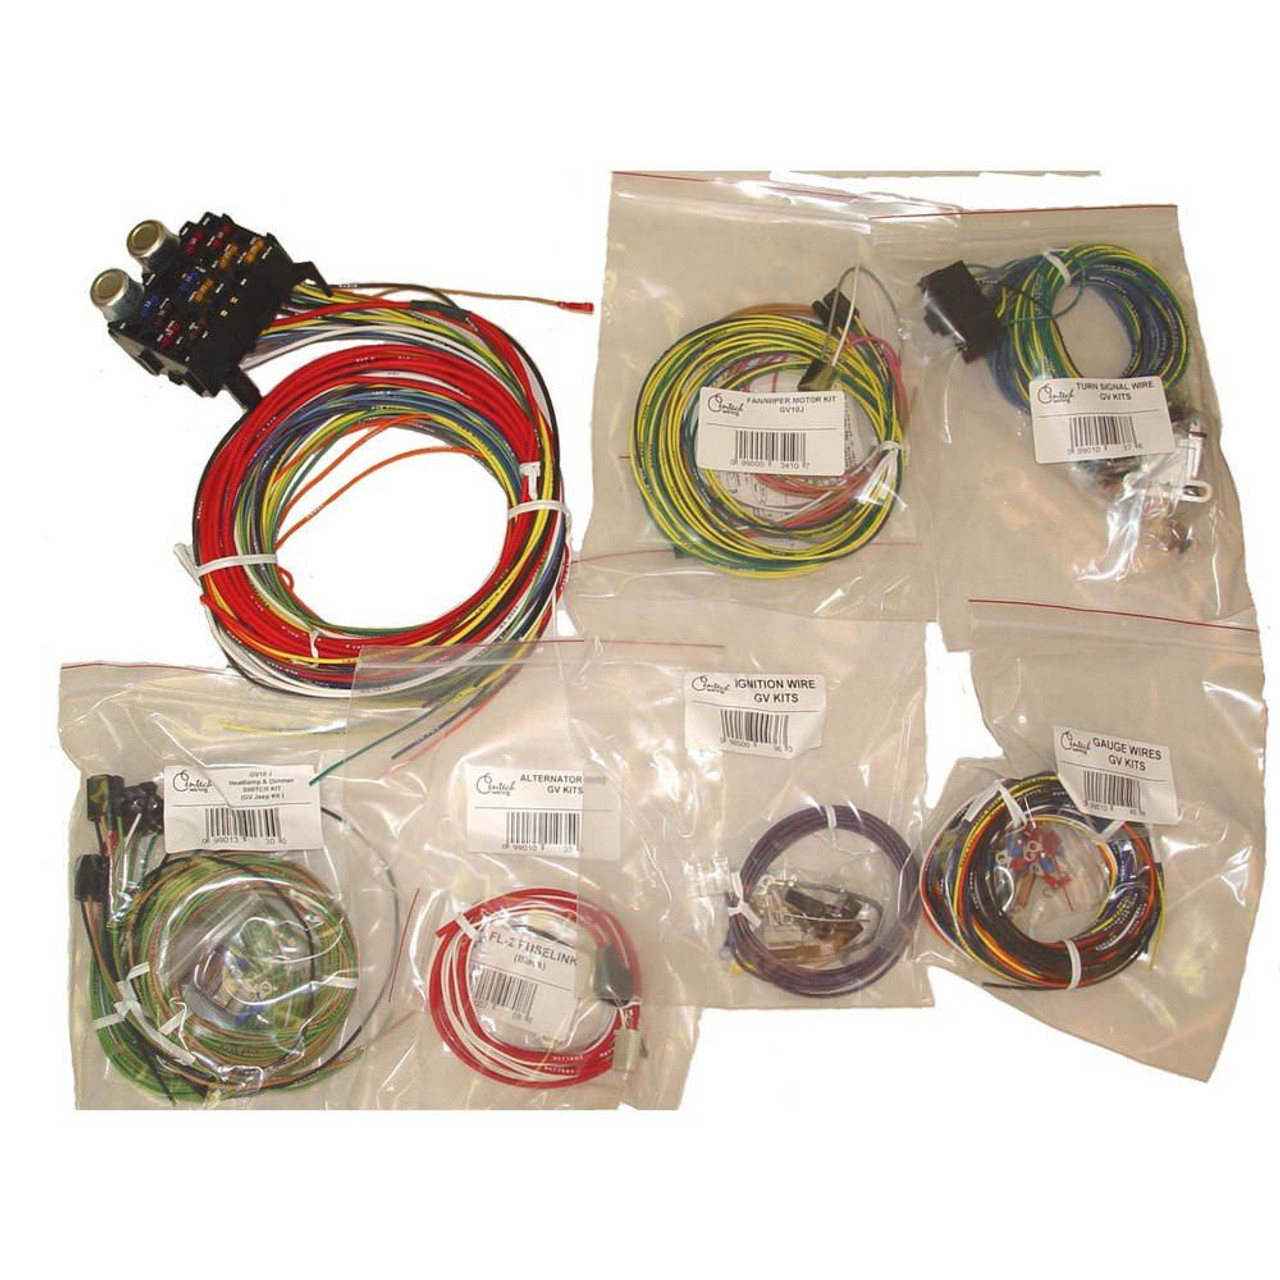 Omix-Ada, 17203.01 - Centech Wiring Harness 55-86 Jeep CJ - Available at  the JeepHut | Cj Wiring Harness Image Restore |  | JeepHut